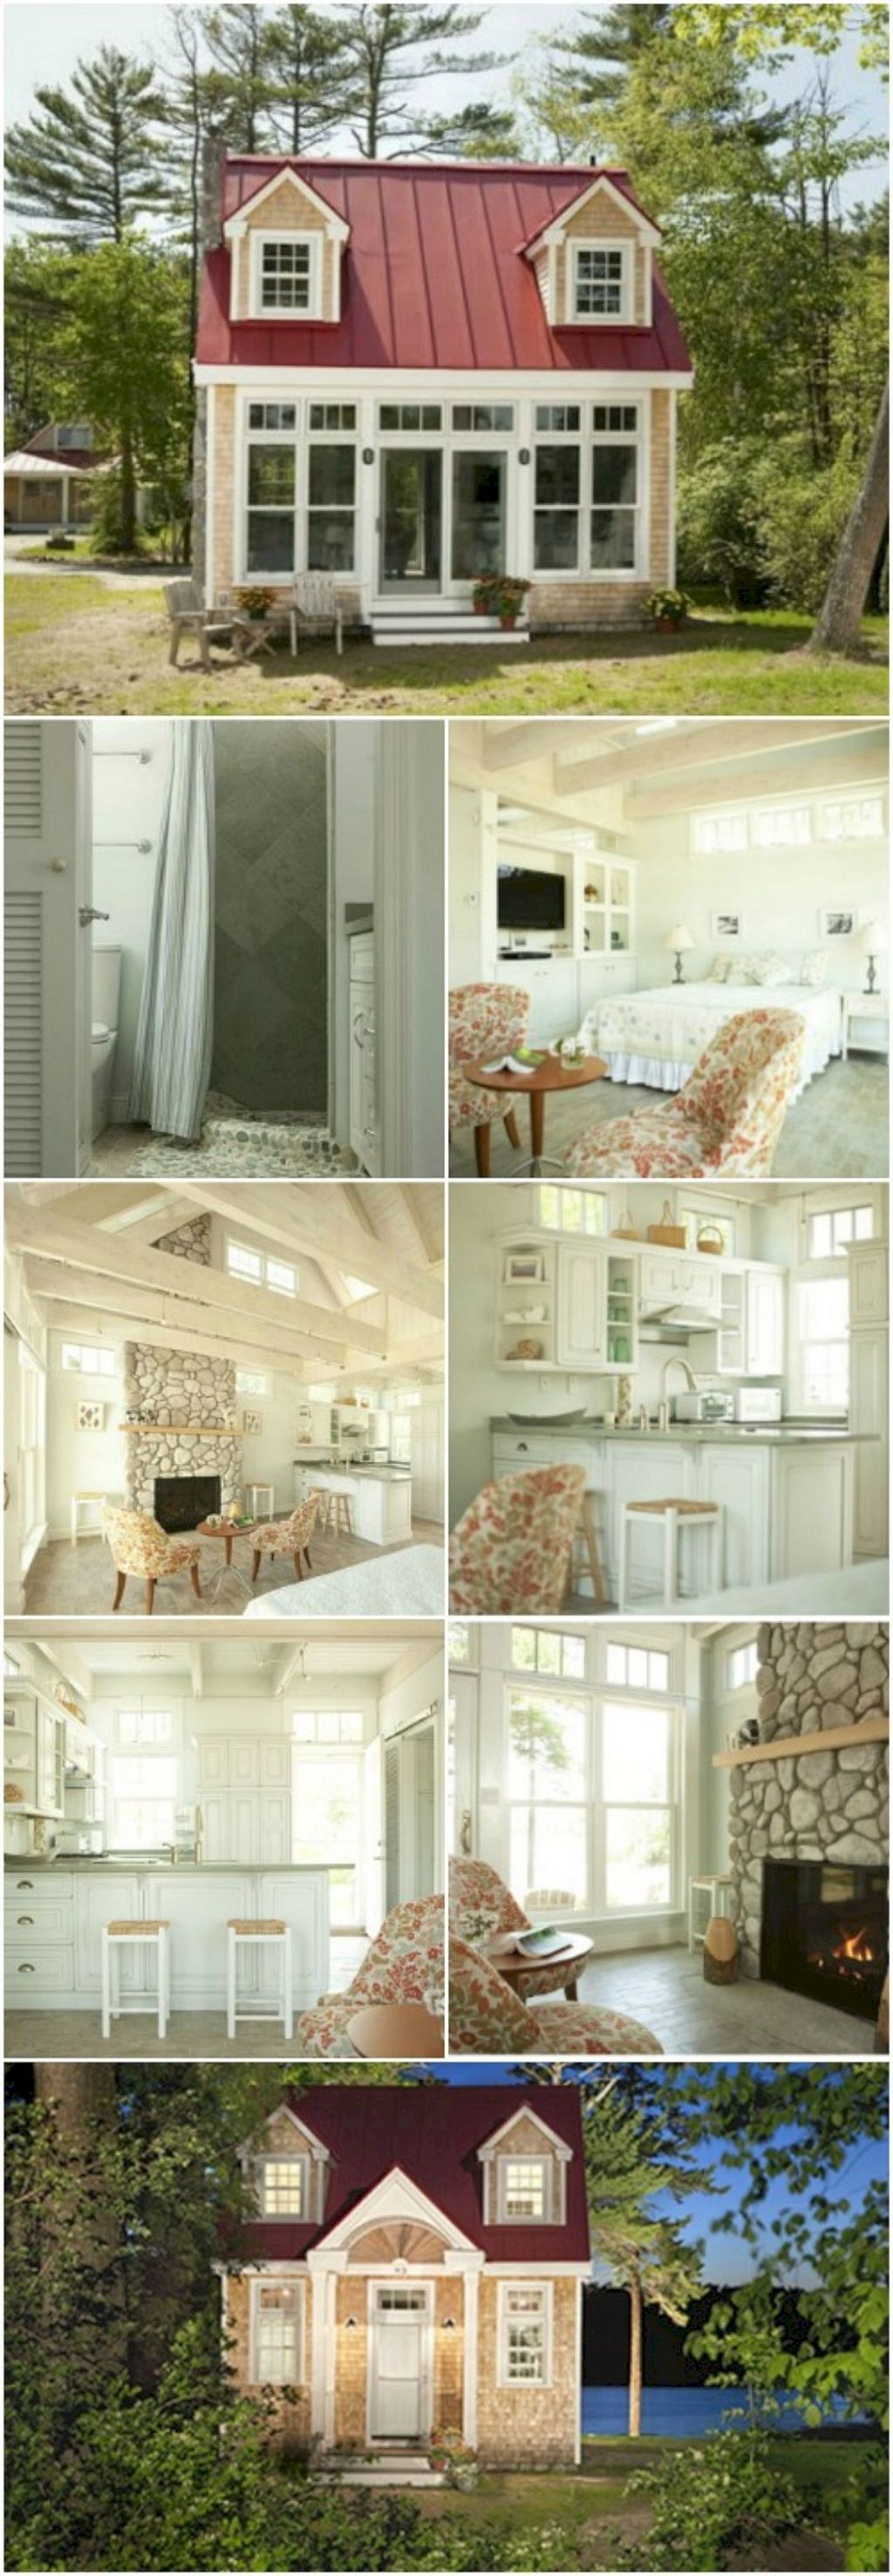 marvelous and impressive tiny houses design that maximize style and function no 60 winzige